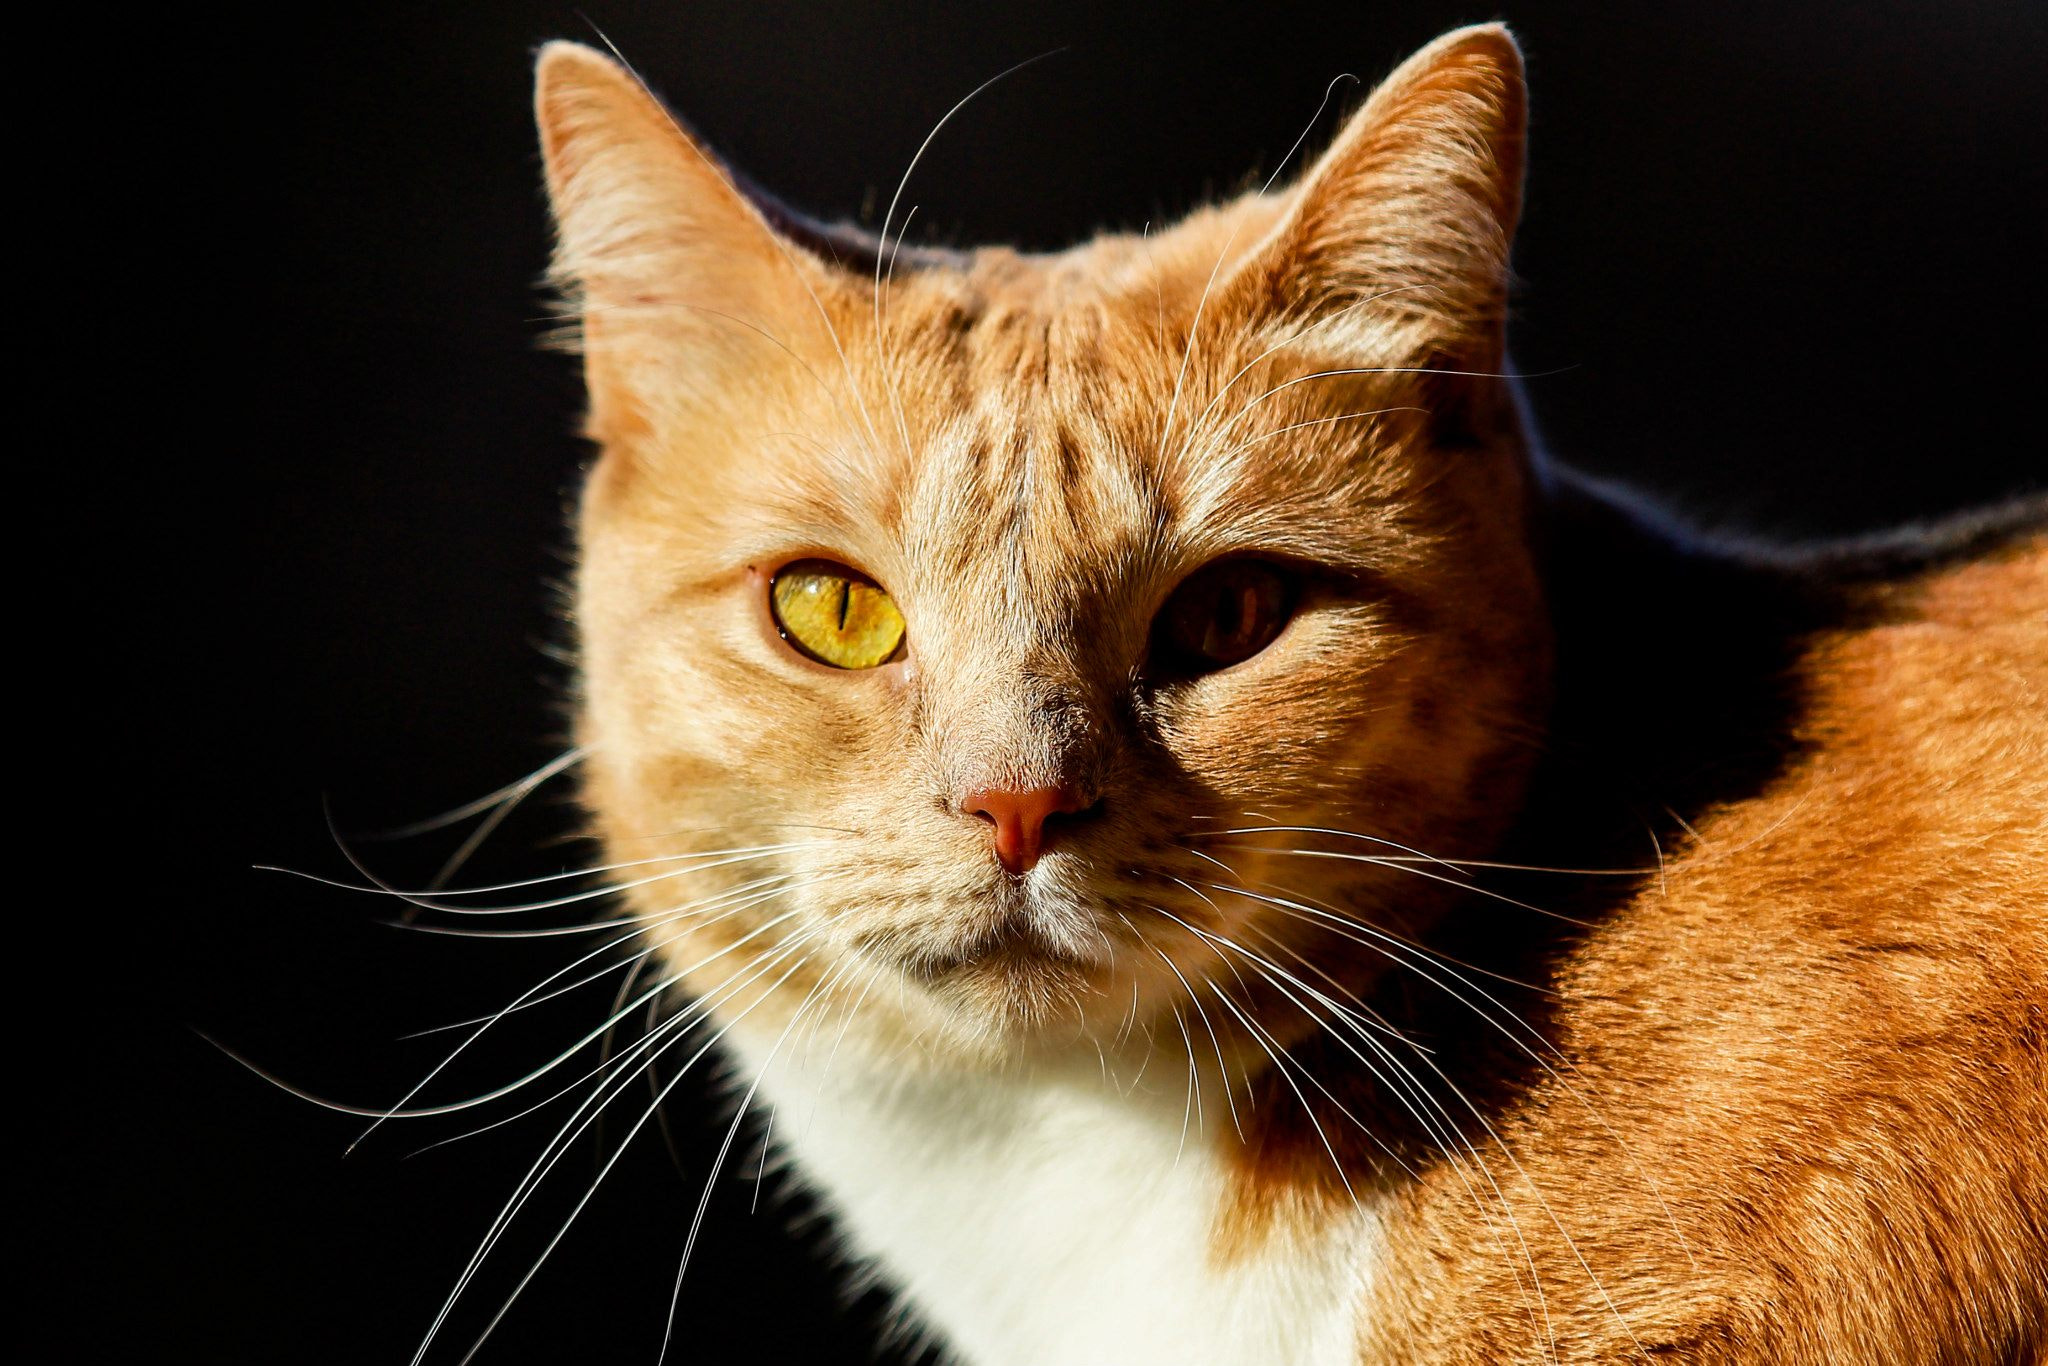 Photograph Cat by Rabaglio Alessandro on 500px